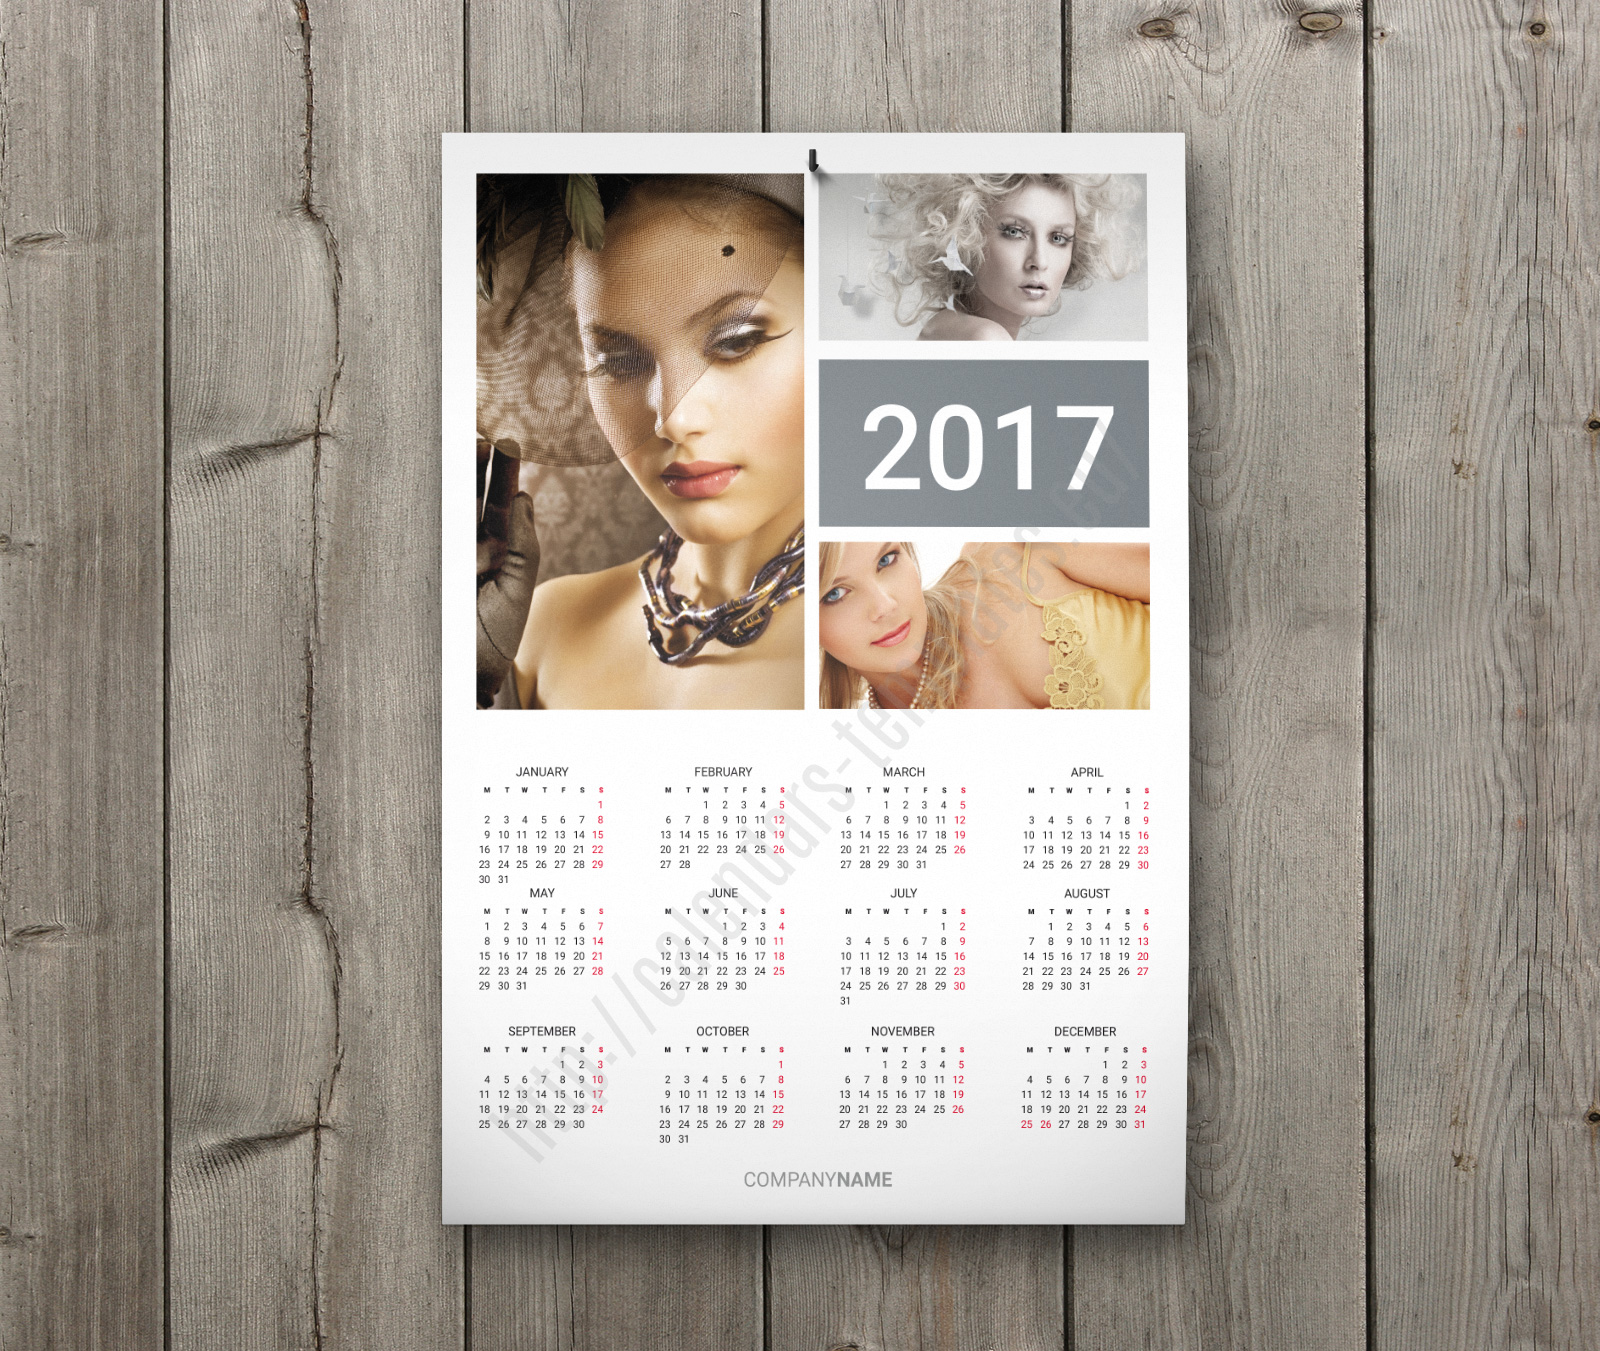 Calendar Poster Template : Digital calendar template download this poster wall